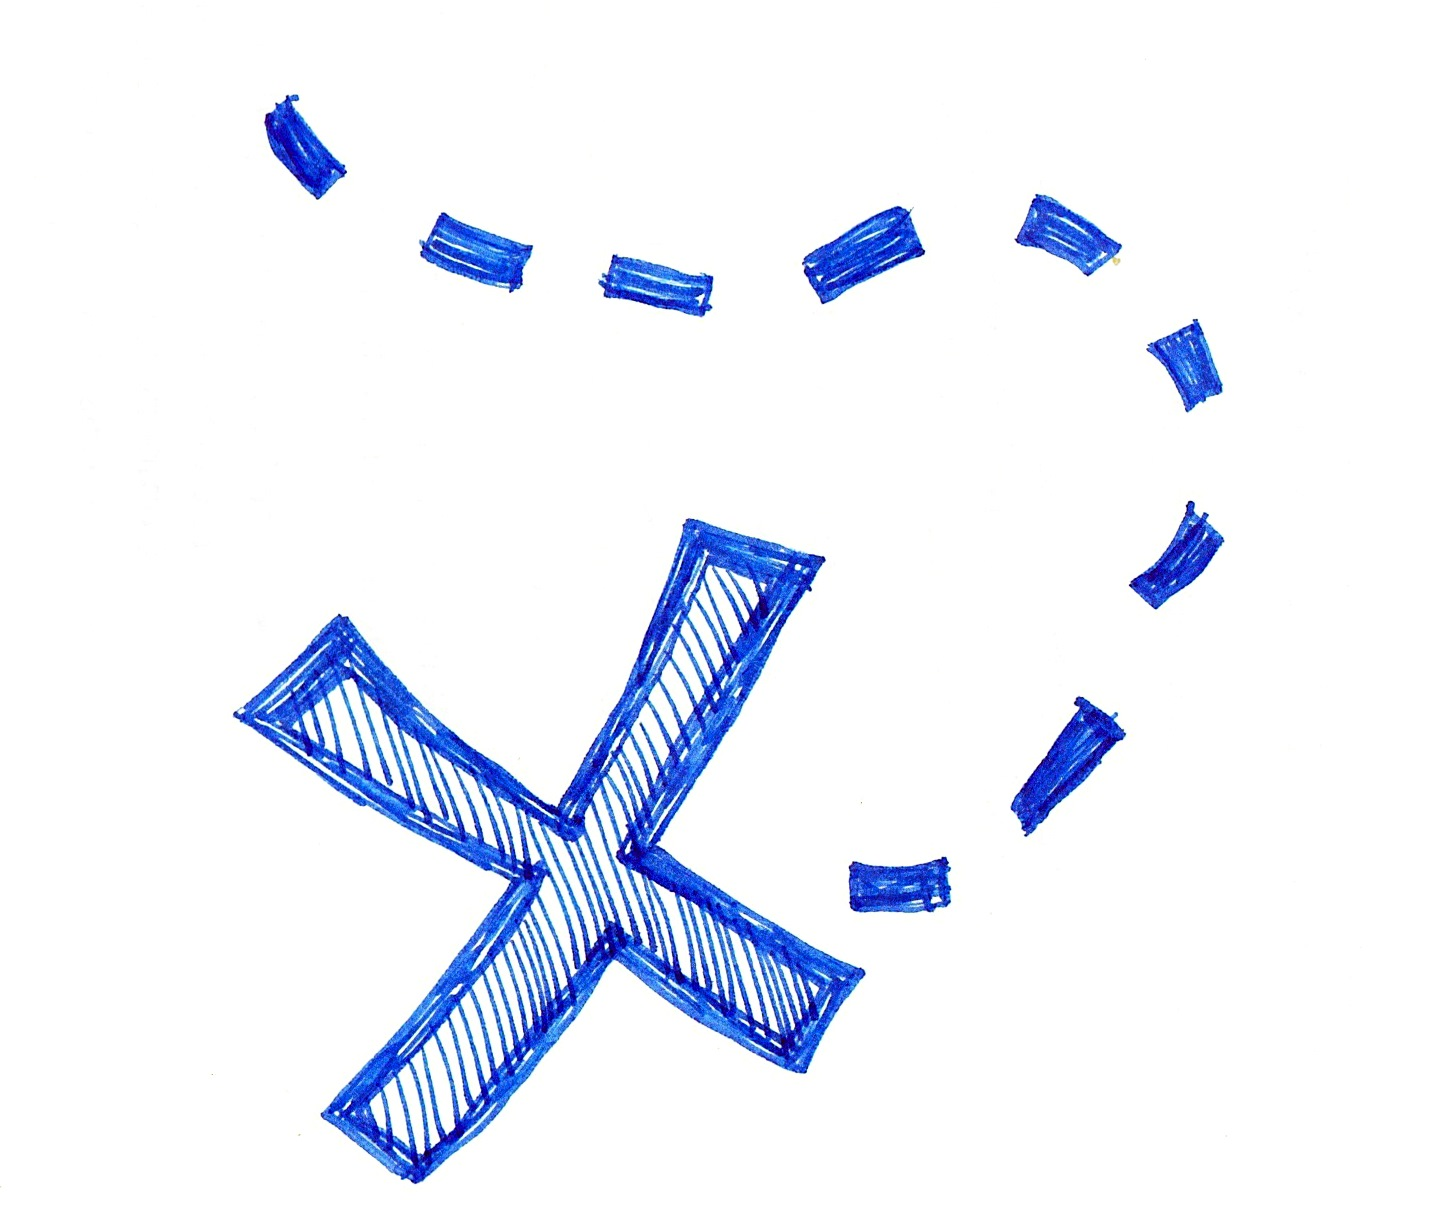 x marks the spot coloring pages - photo #34